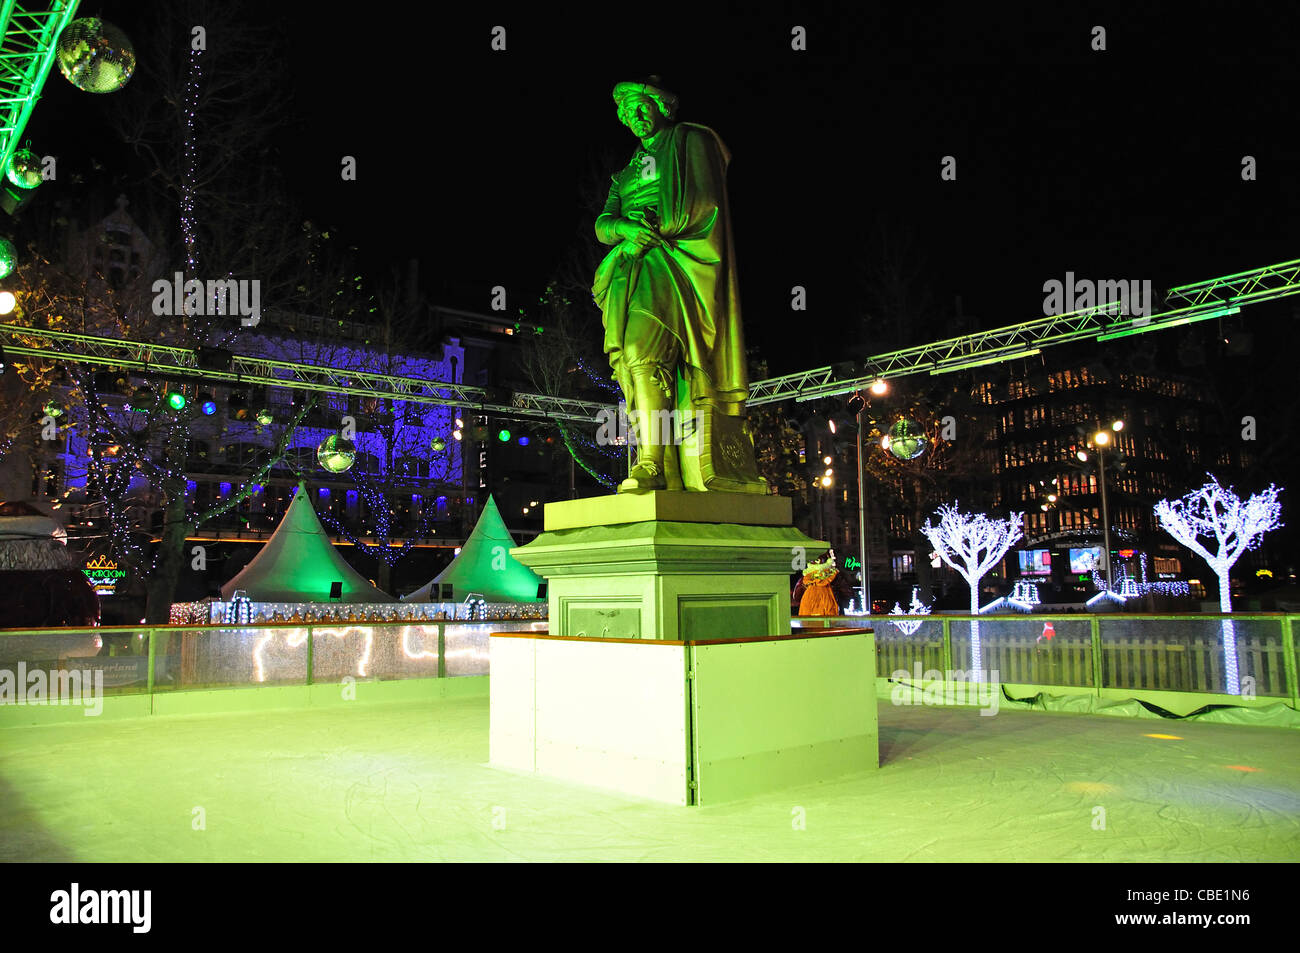 Ice-rink at Christmas market, Rembrandtplein, Amsterdam, Noord-Holland, Kingdom of the Netherlands - Stock Image